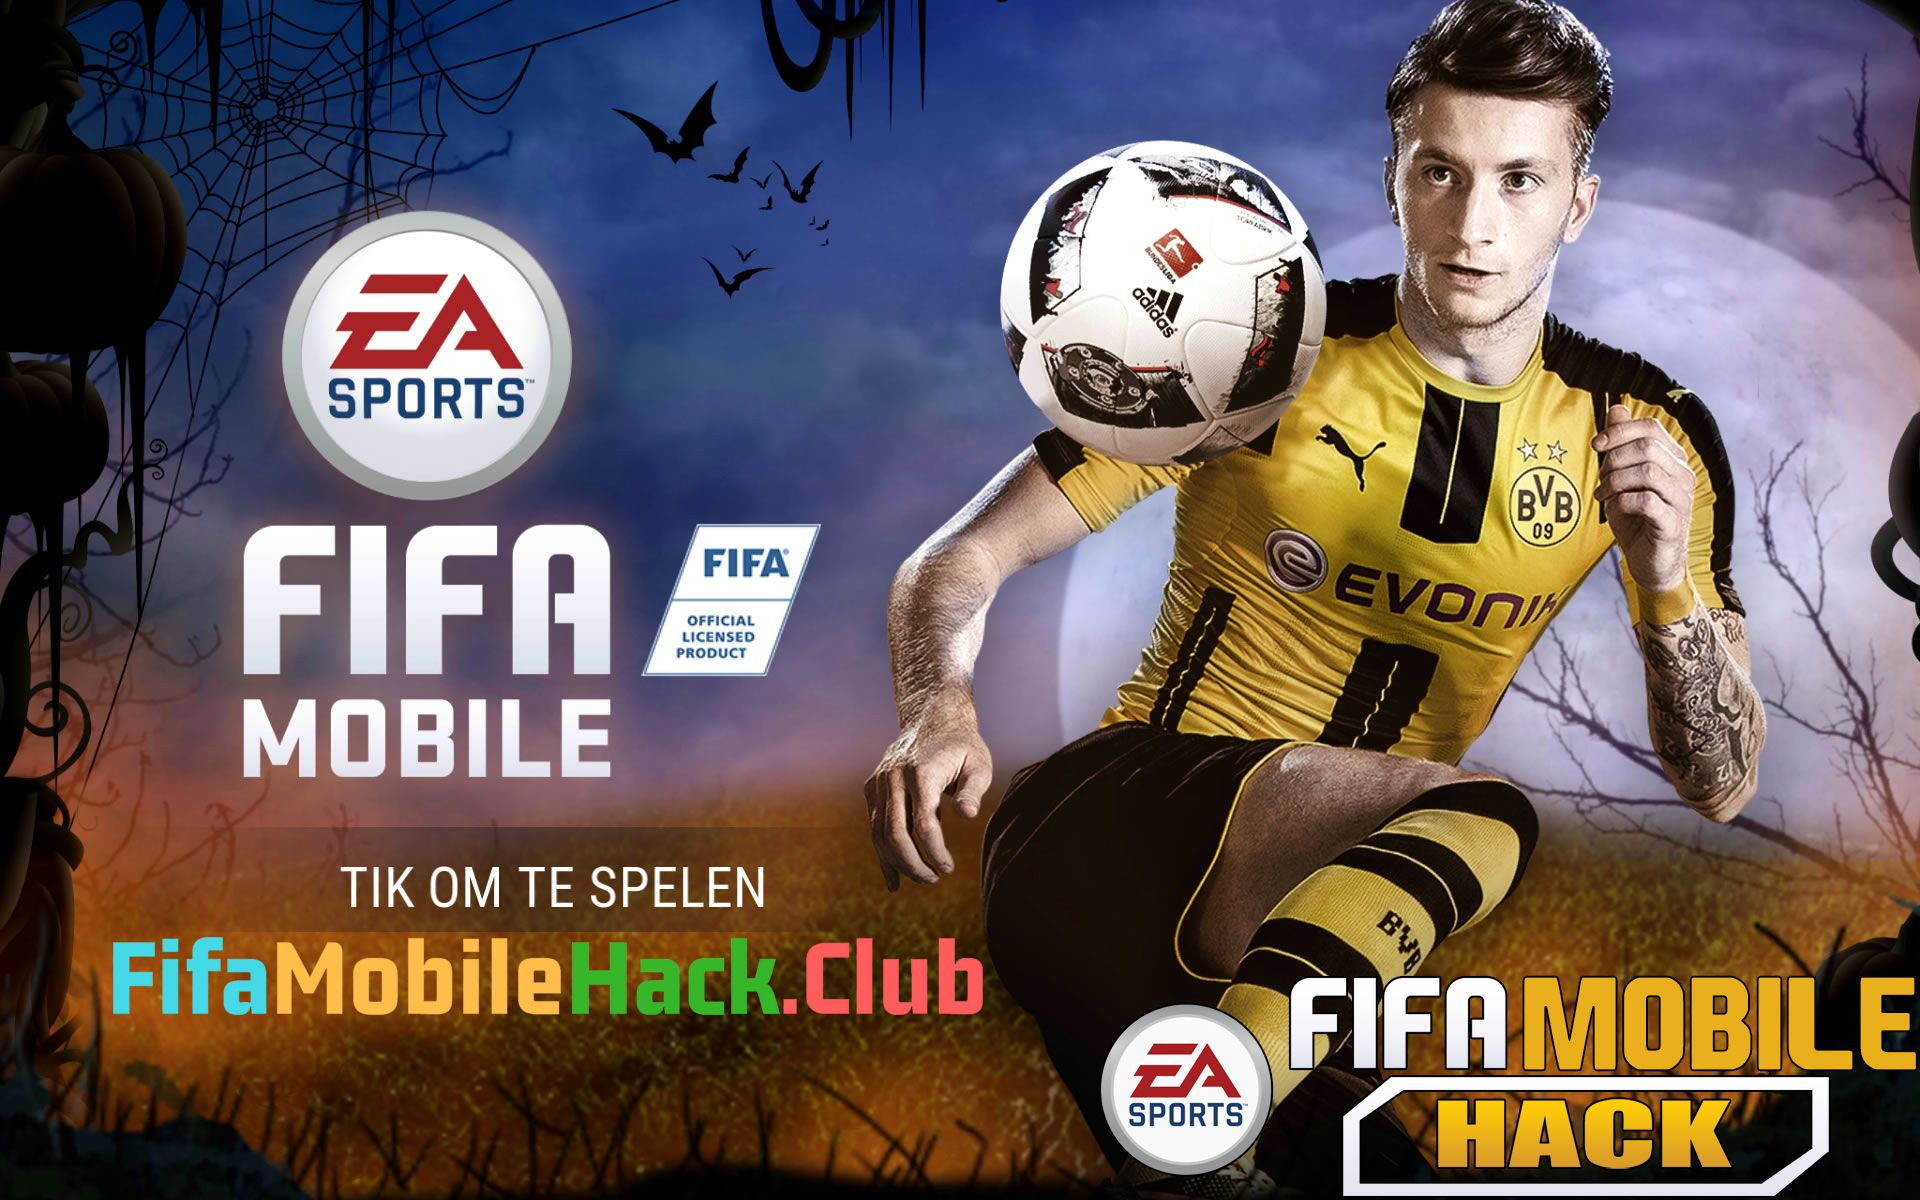 Fifa Mobile Hack Tool Unlimited Free Coins And Fifa Points Generator Android Ios Tested Fifa Mobile Hack Get Free Coins A Fifa Mobile Generator Fifa Online